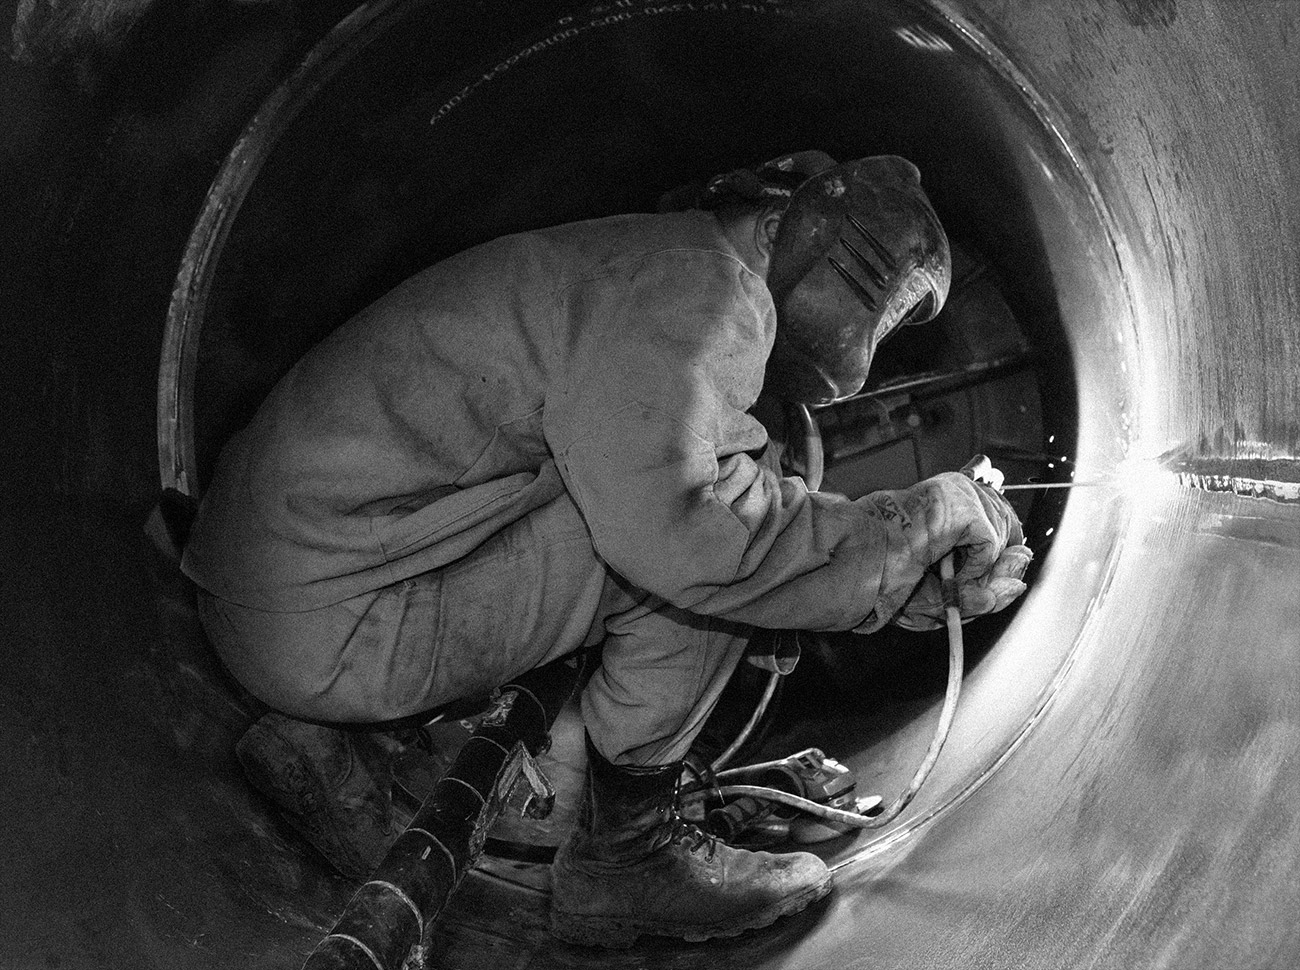 Worker welding a pipeline in Siberia